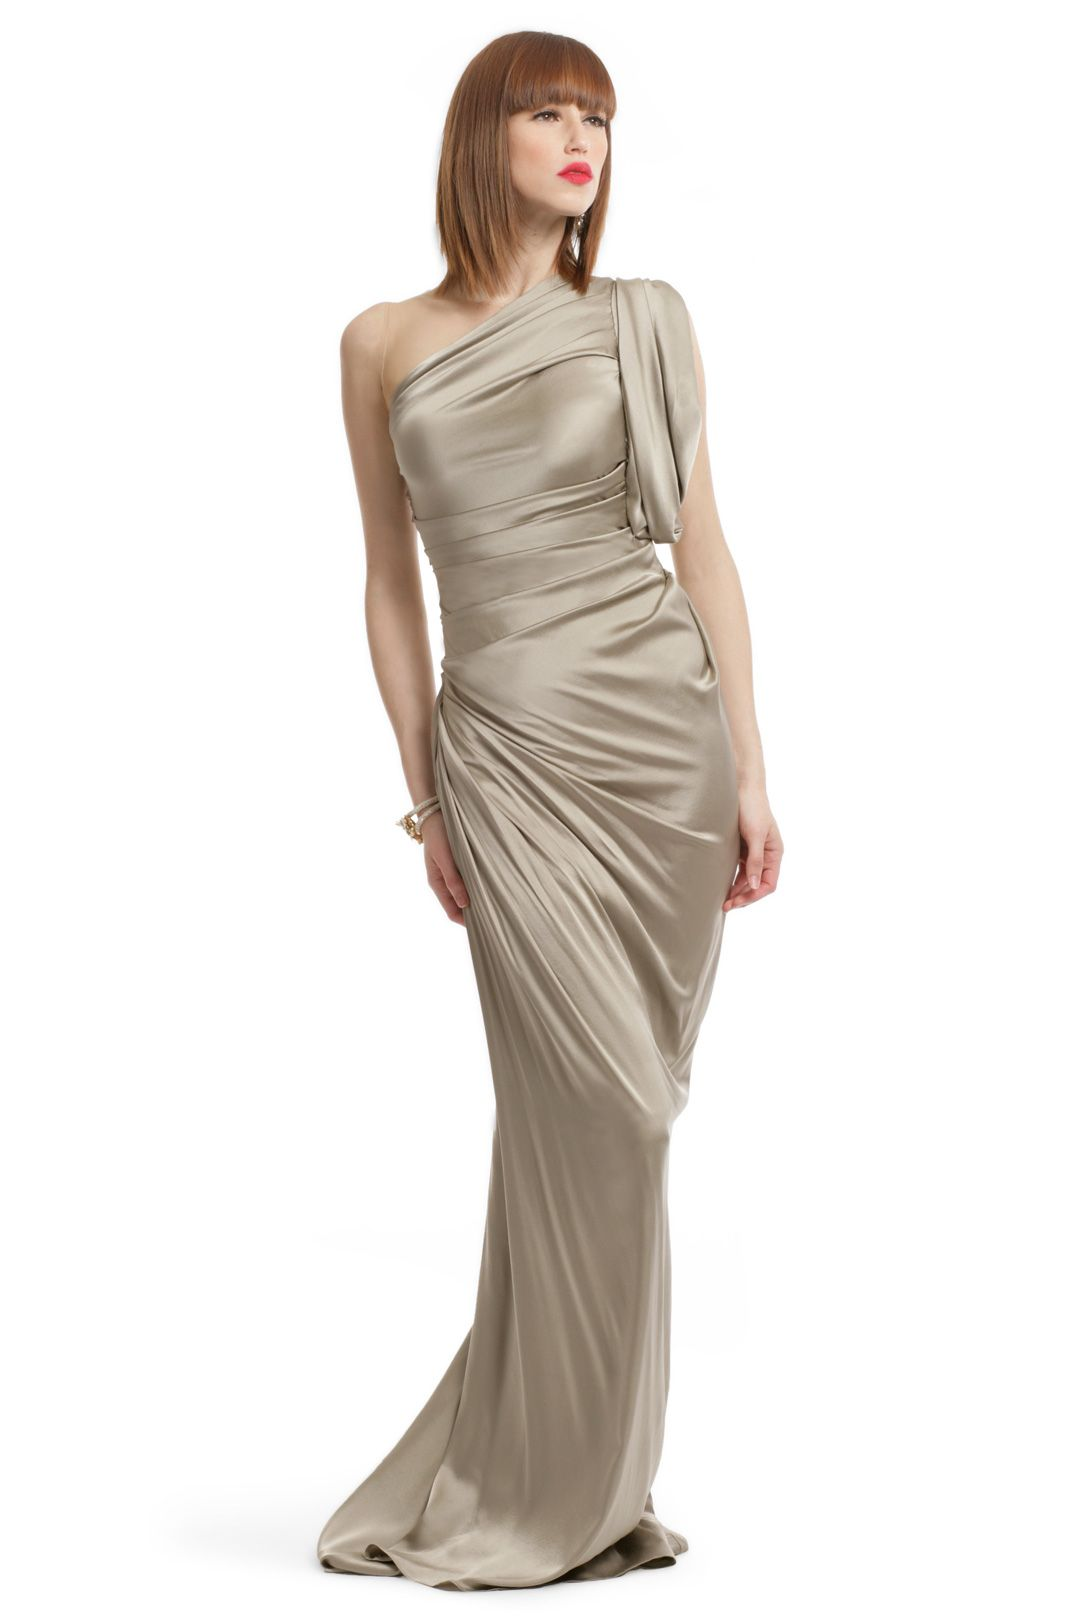 Stone Statue Draped Gown vera wang | Ideas - style | Pinterest ...